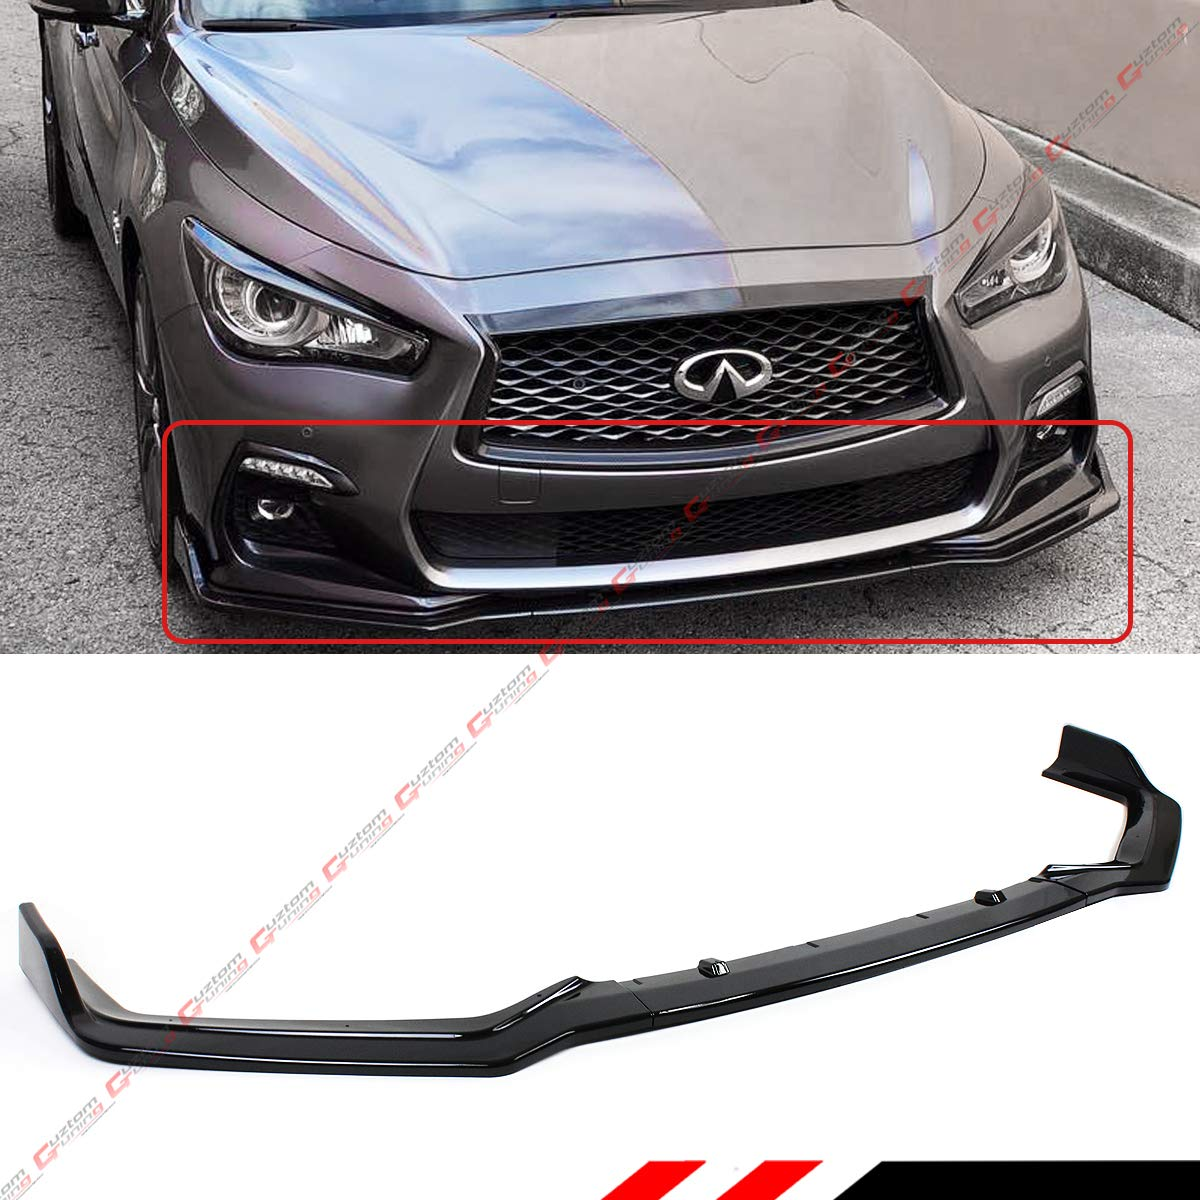 For Infiniti Q50 2014-2017 Gloss Black Front Bumper Lip Spoiler Cover Trim 3pcs